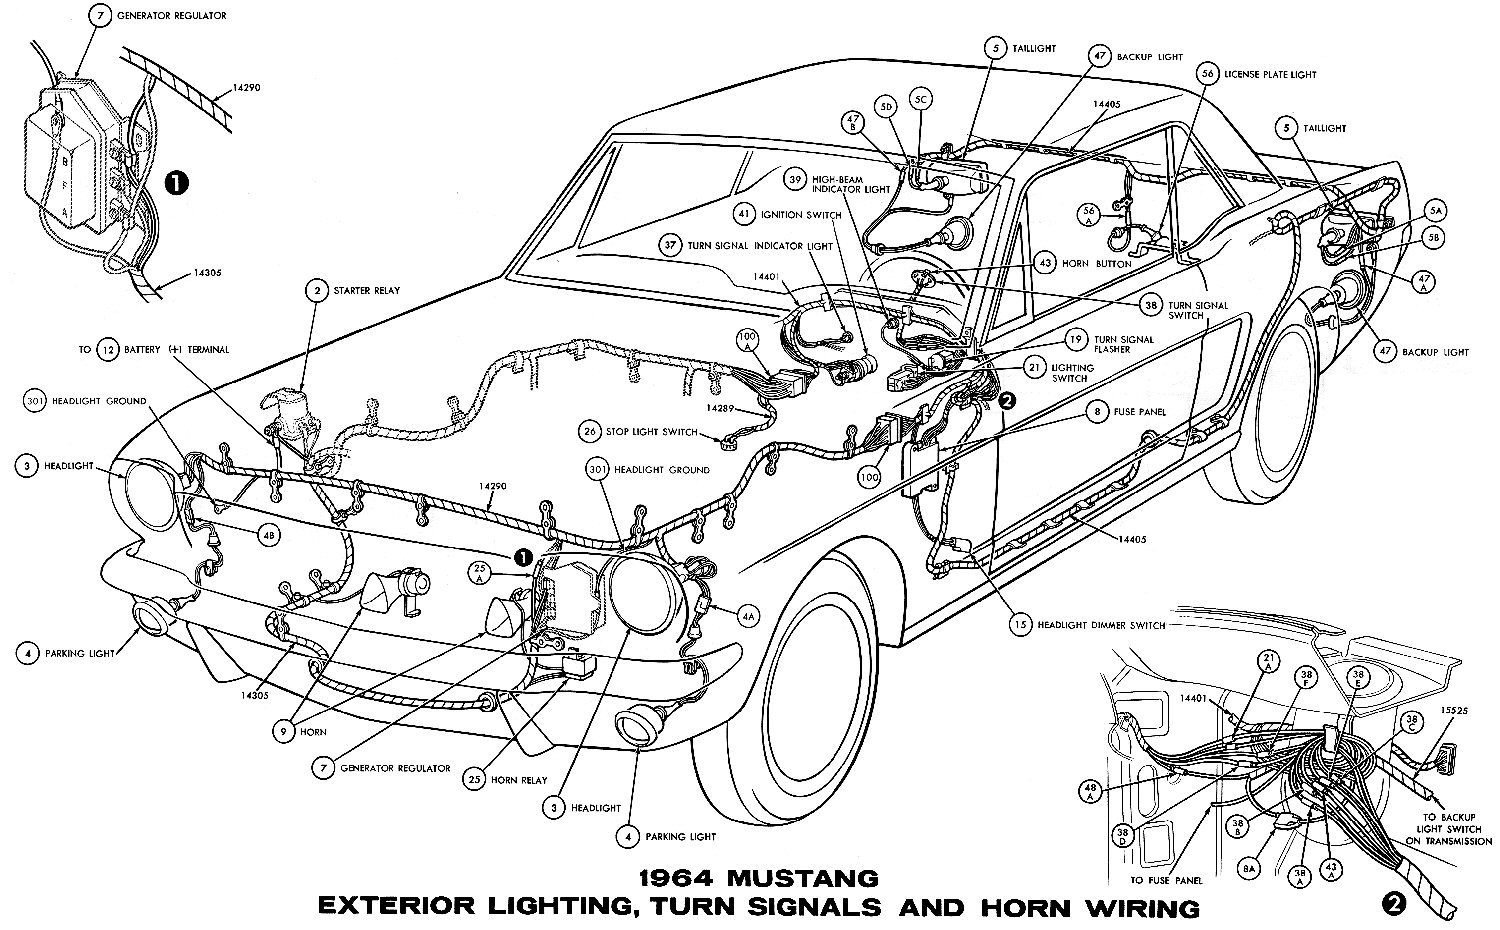 Mustang Exterior Light Wiring Diagram